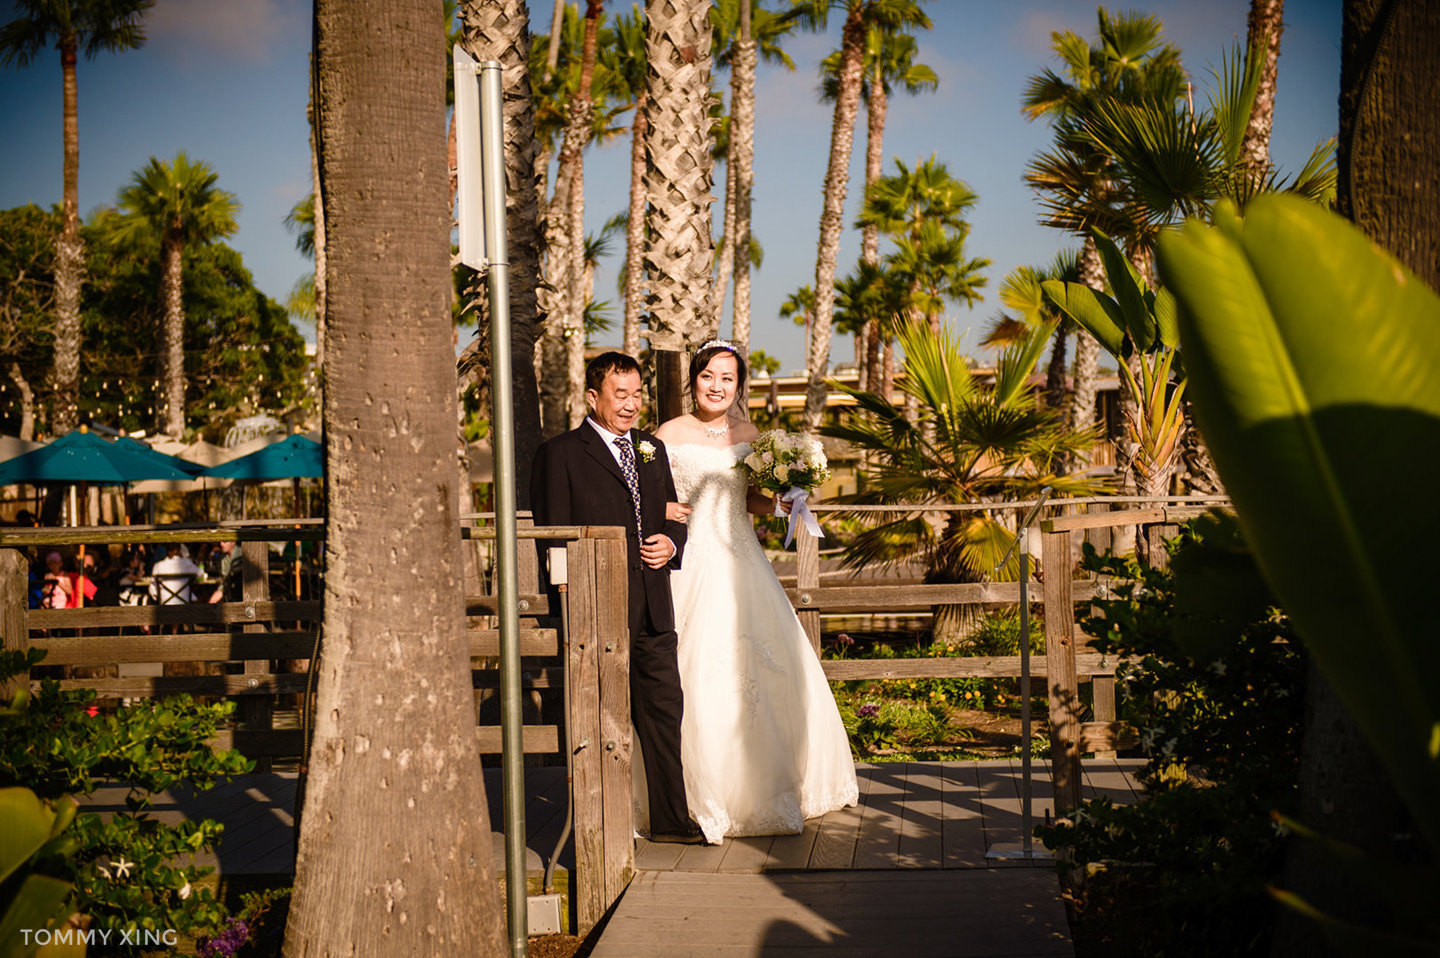 Paradise Point Resort Wedding Xiaolu & Bin San Diego 圣地亚哥婚礼摄影跟拍 Tommy Xing Photography 洛杉矶婚礼婚纱照摄影师 106.jpg